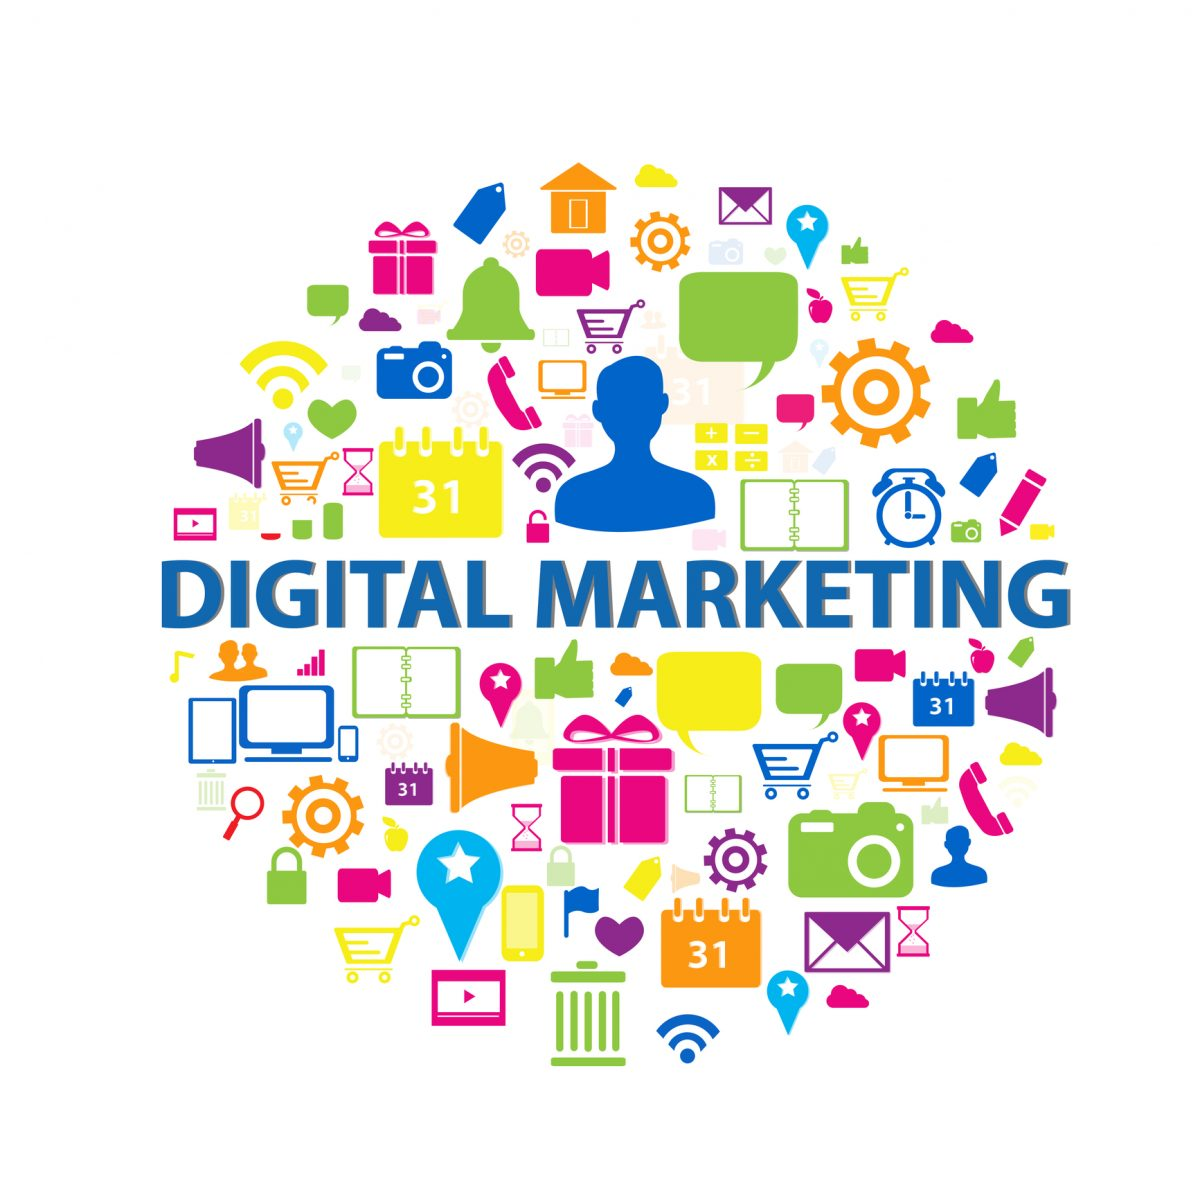 Top Best Channels For Digital Marketing You Need To Know About